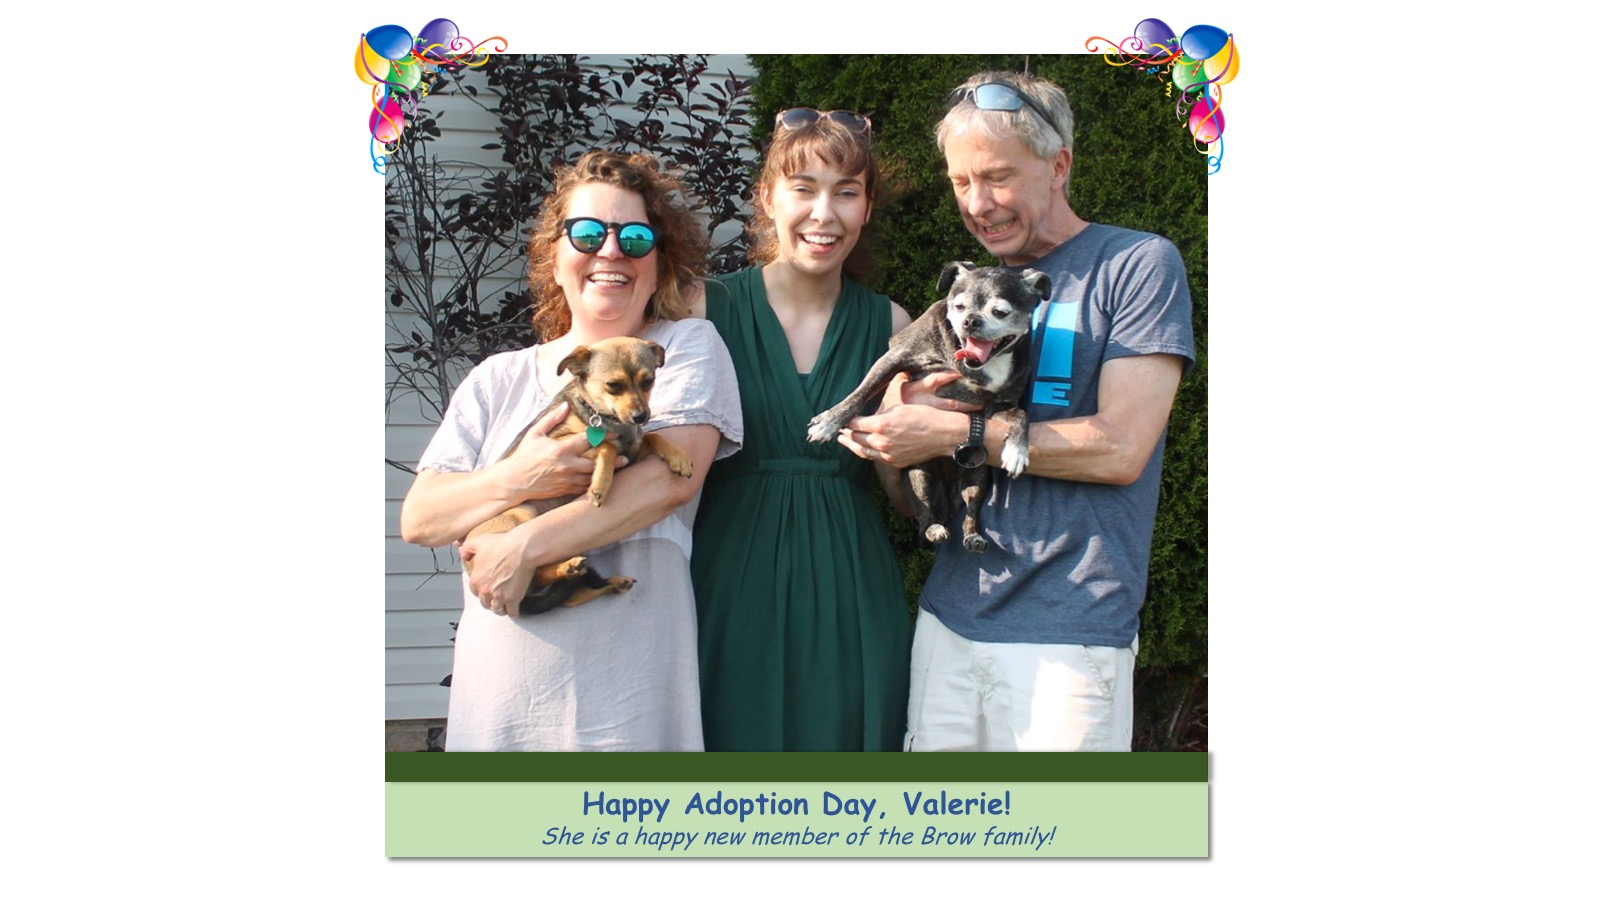 Valerie_Adoption_Photo_2018.jpg